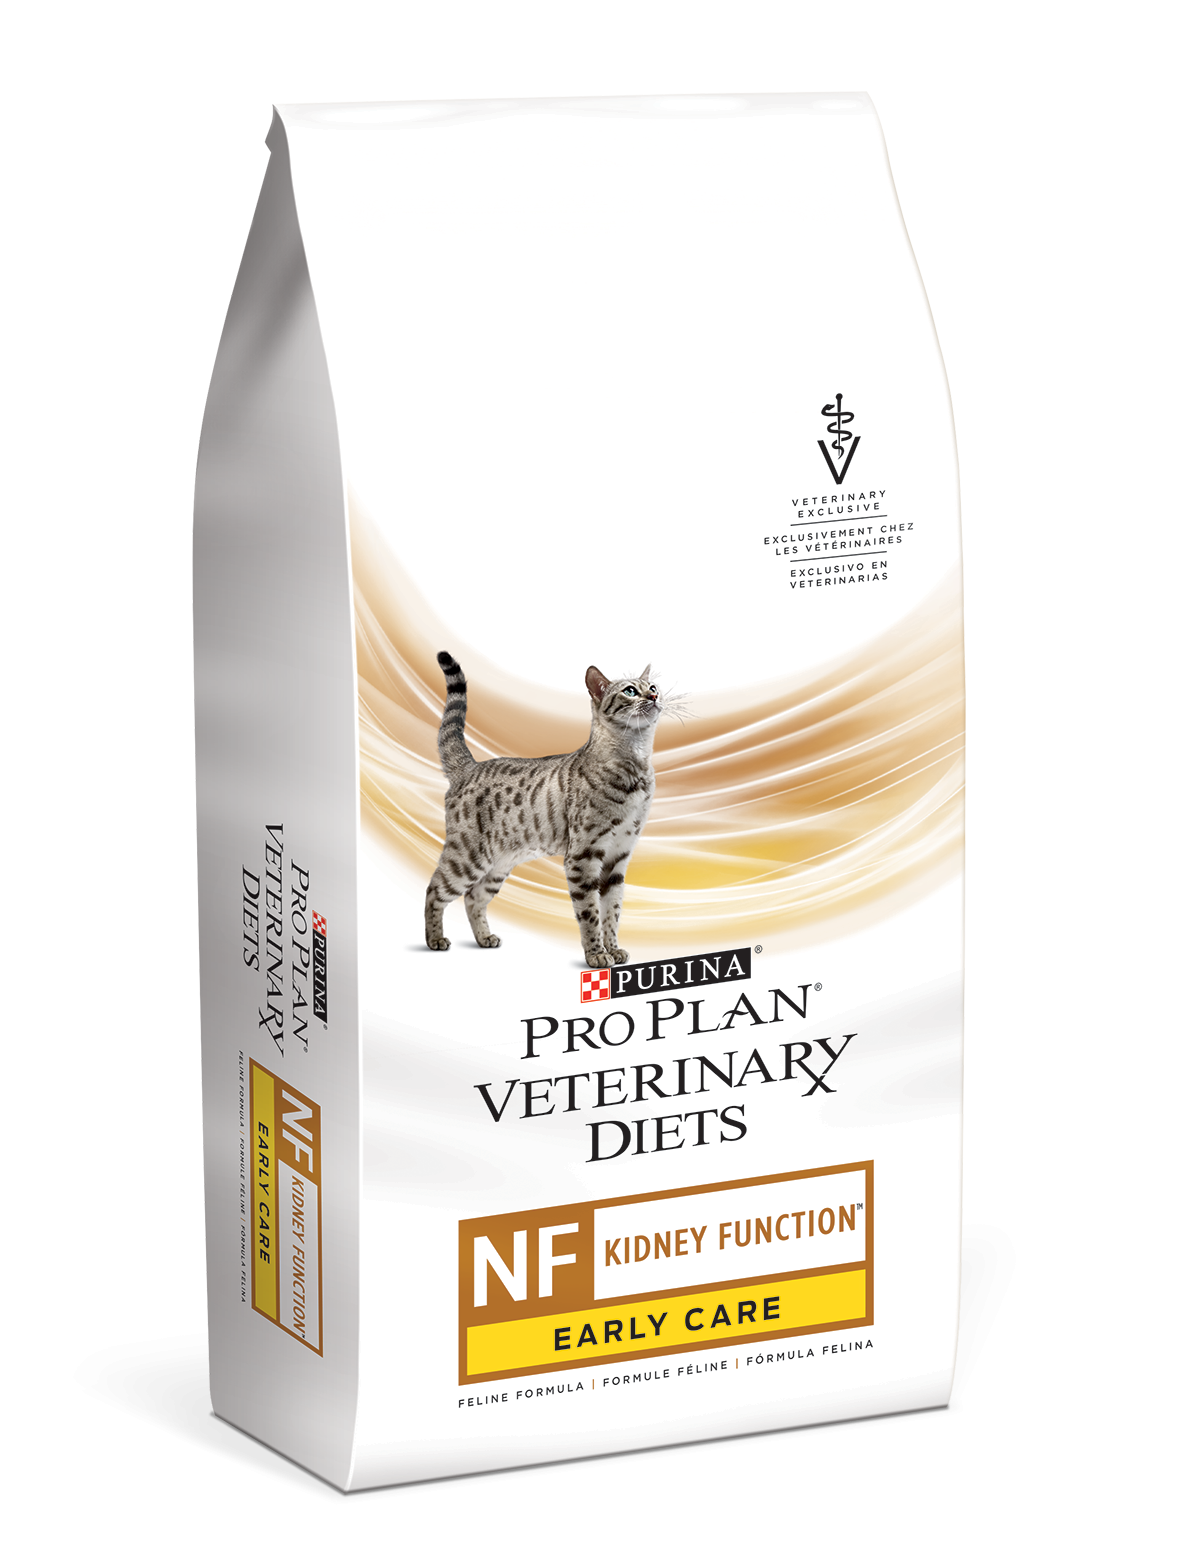 Nf Kidney Function Early Care Cat Food Pro Plan Vet Direct